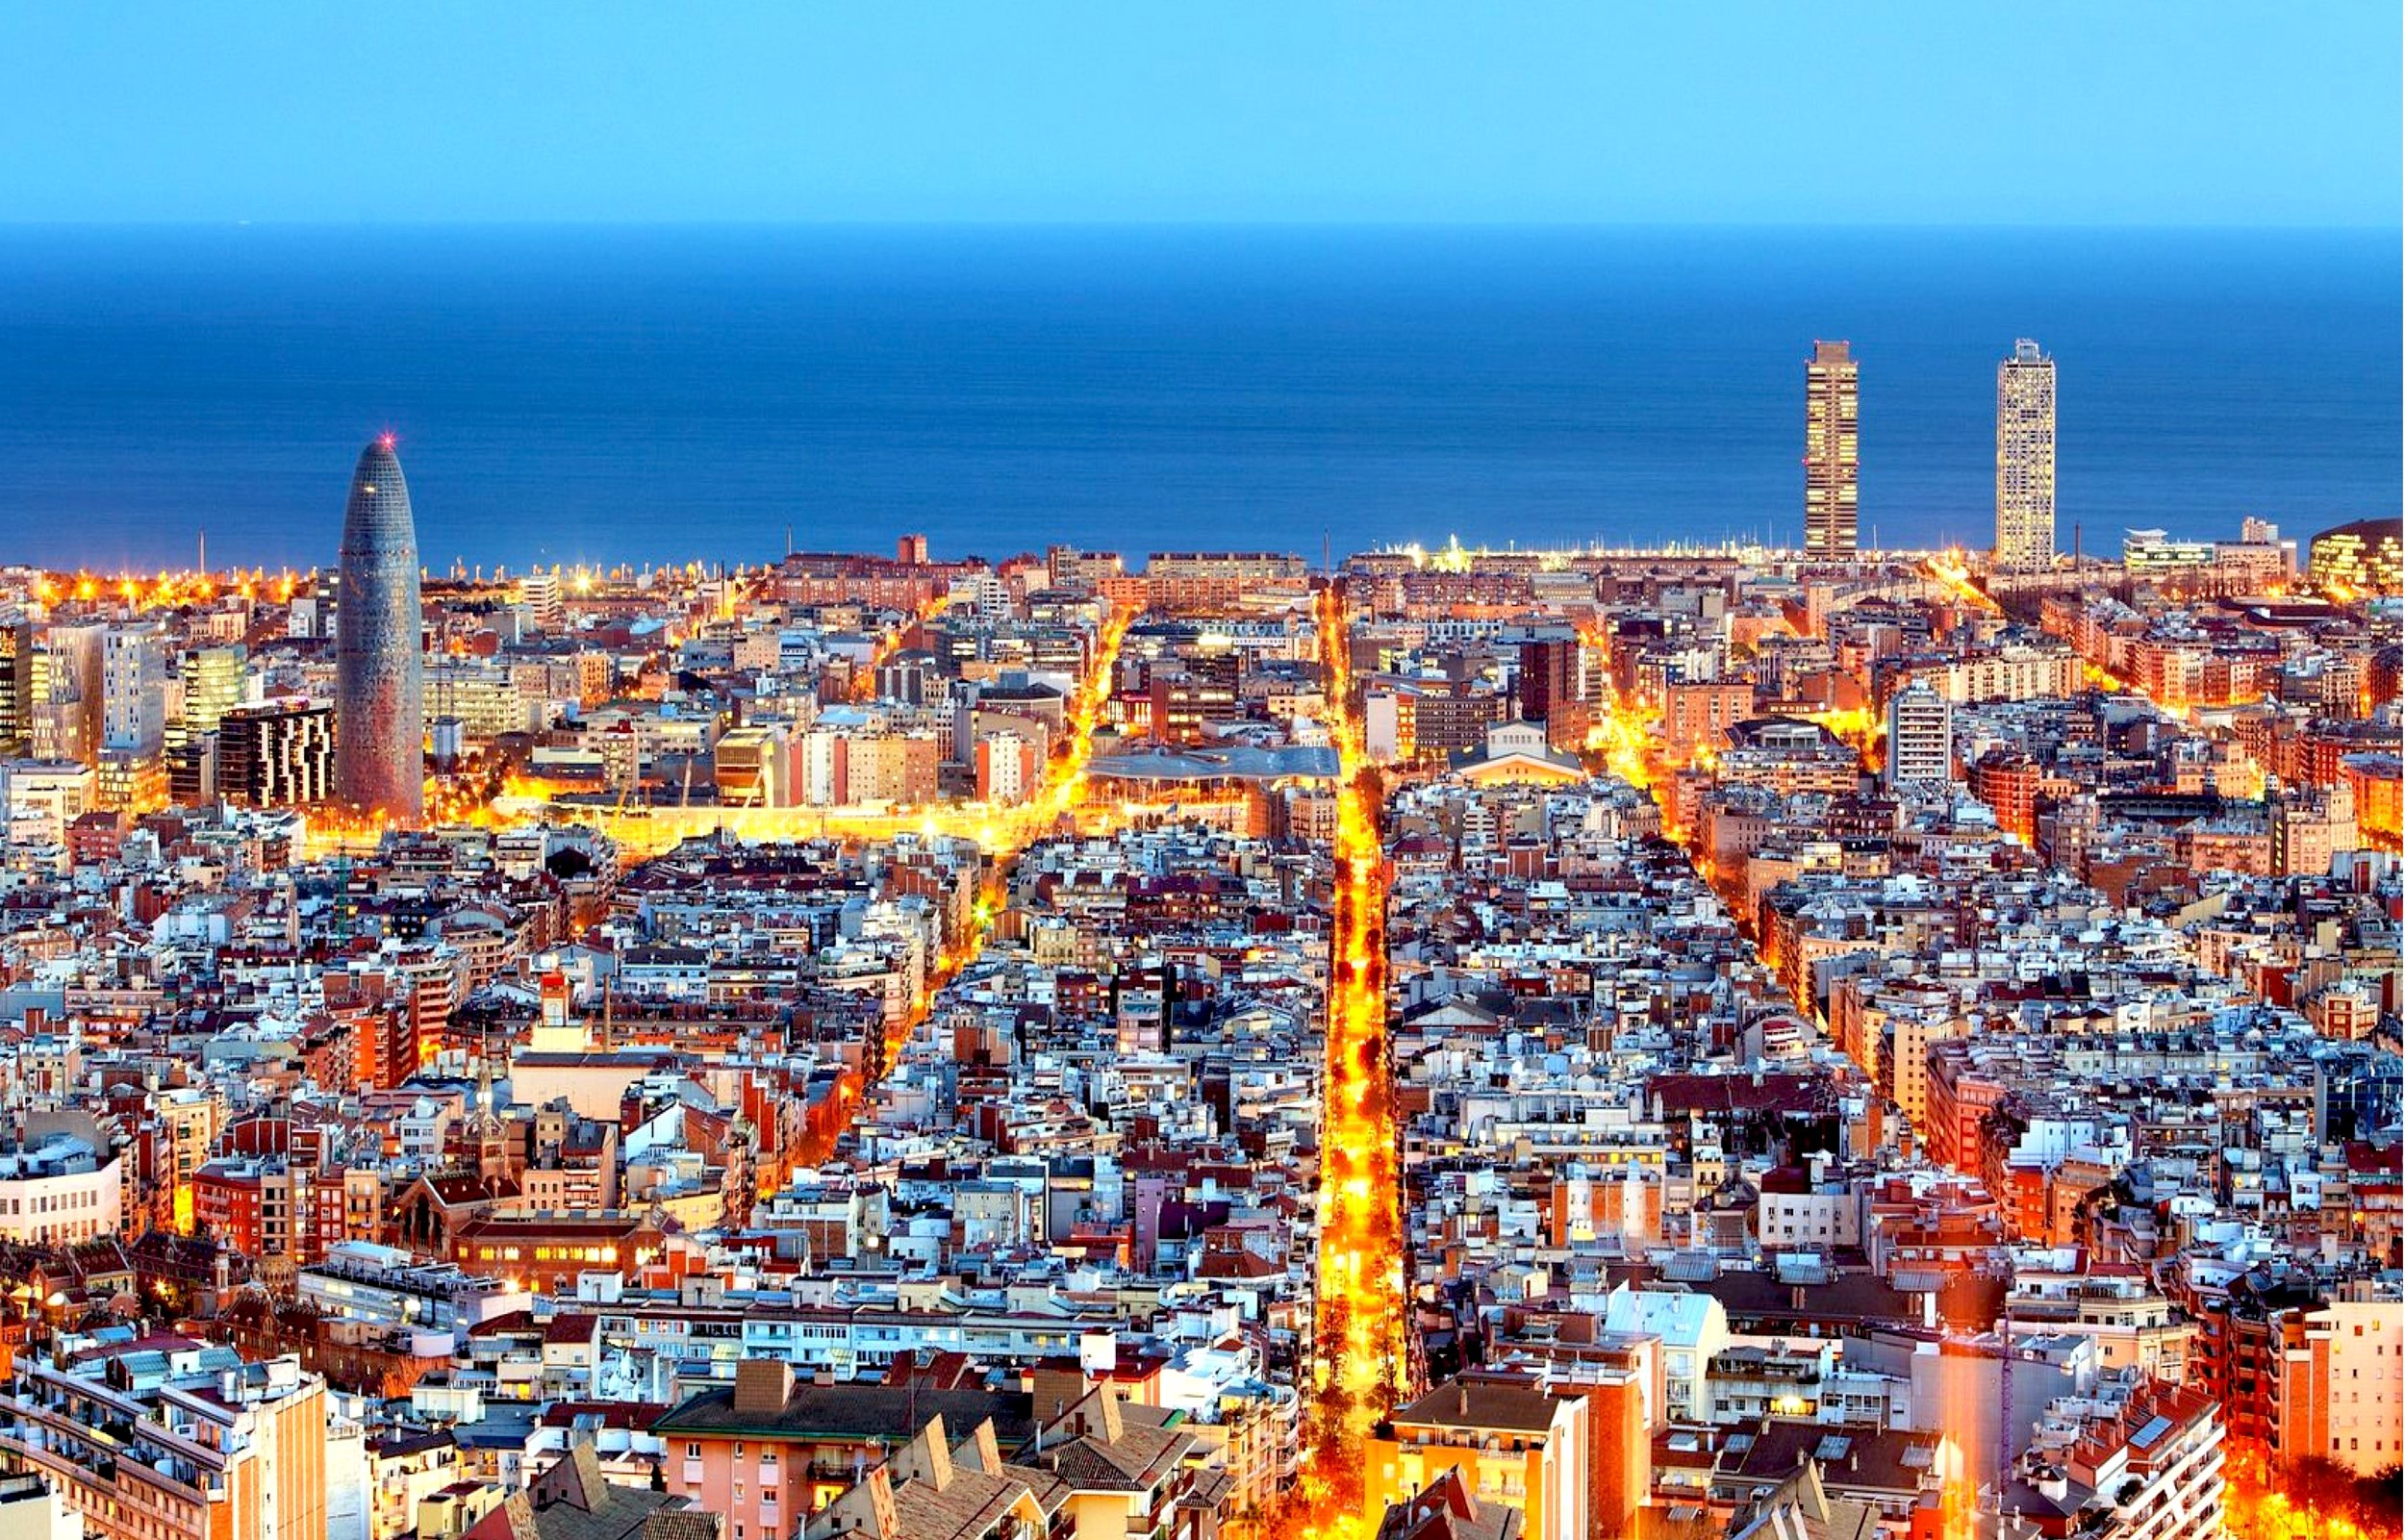 Discover barcelona - One of the most exciting cultural destinations, Barcelona is a special place for art, music and culture lovers. A city of colorful contrasts, culture, and nightlife, its spectacular architecture reflects its 2,000 years old history.